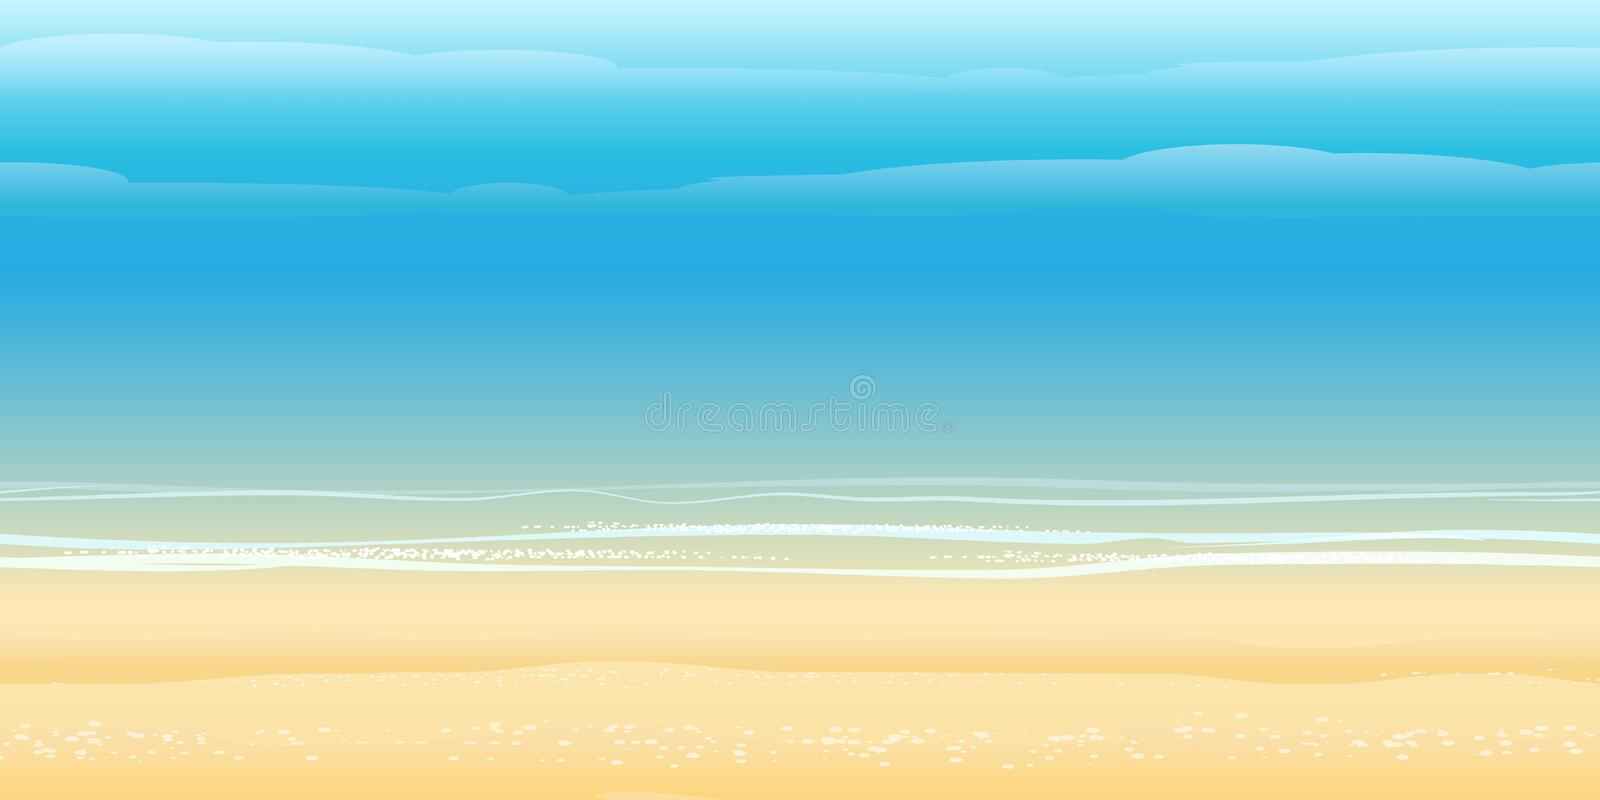 Seashore Pattern stock illustration